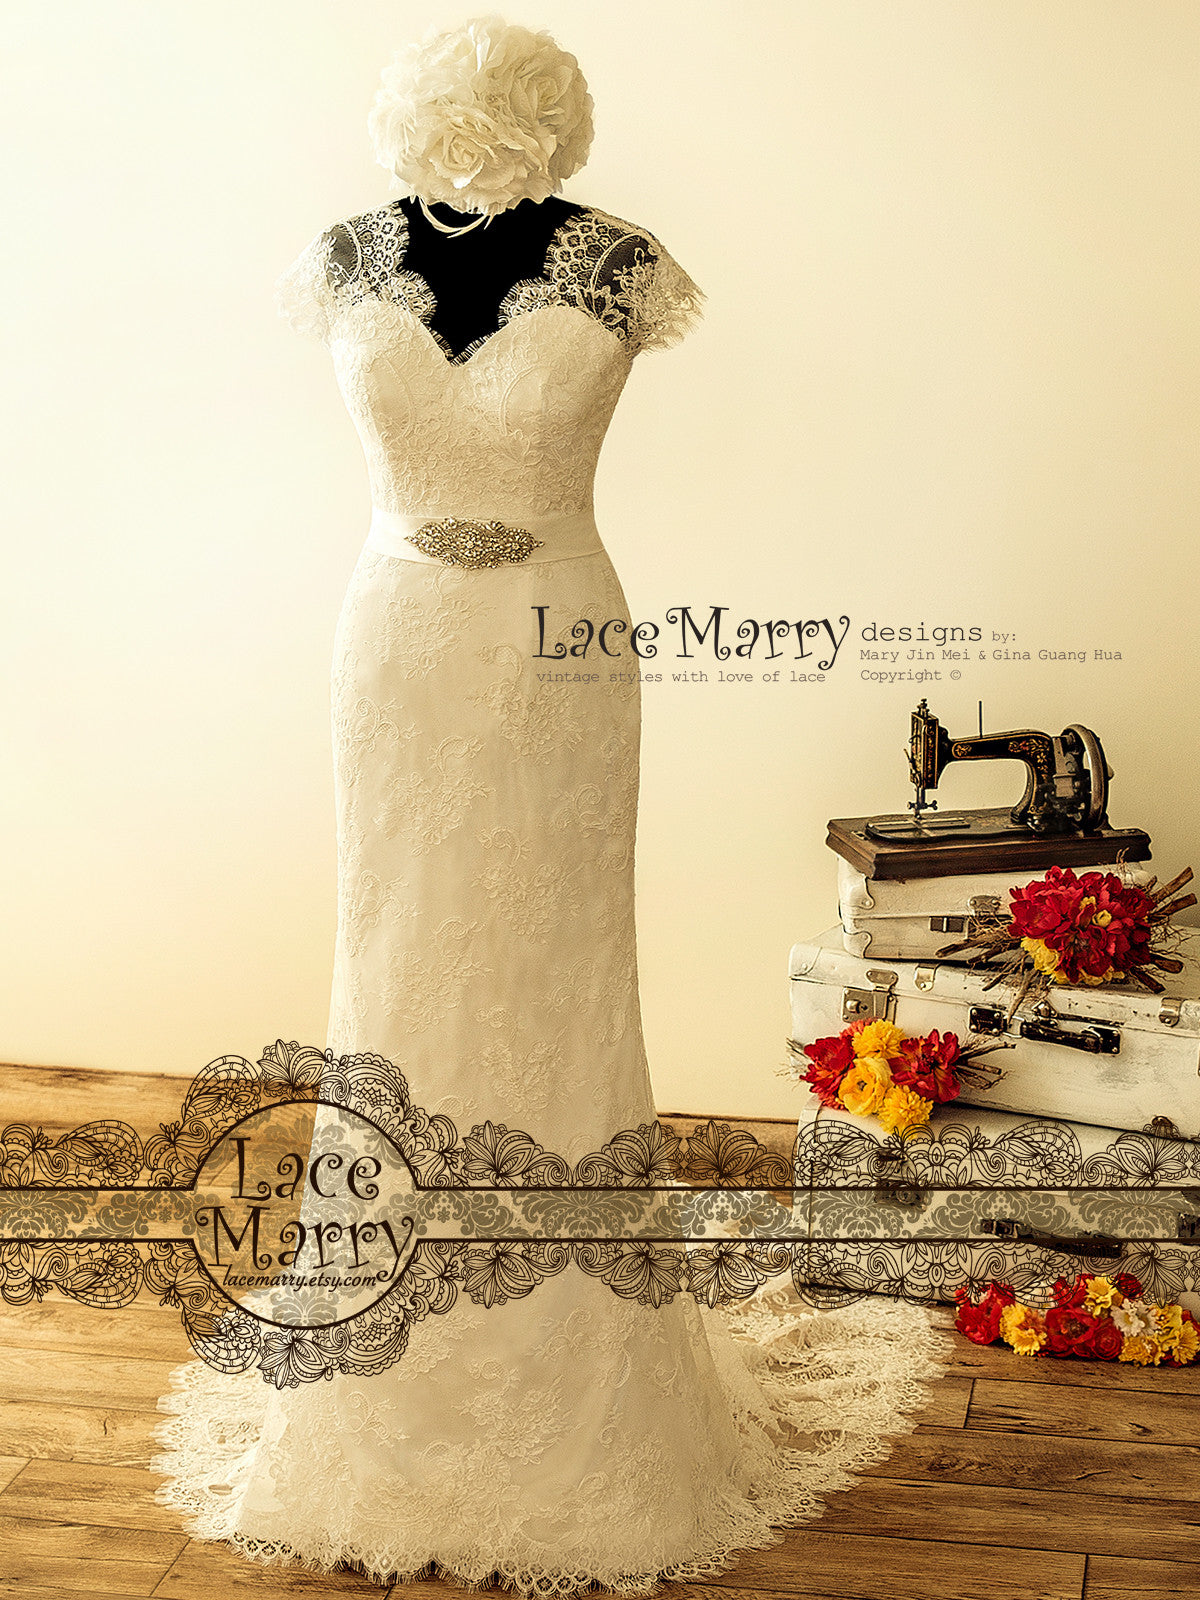 Bohemian Lace Wedding Dress in 20's Style